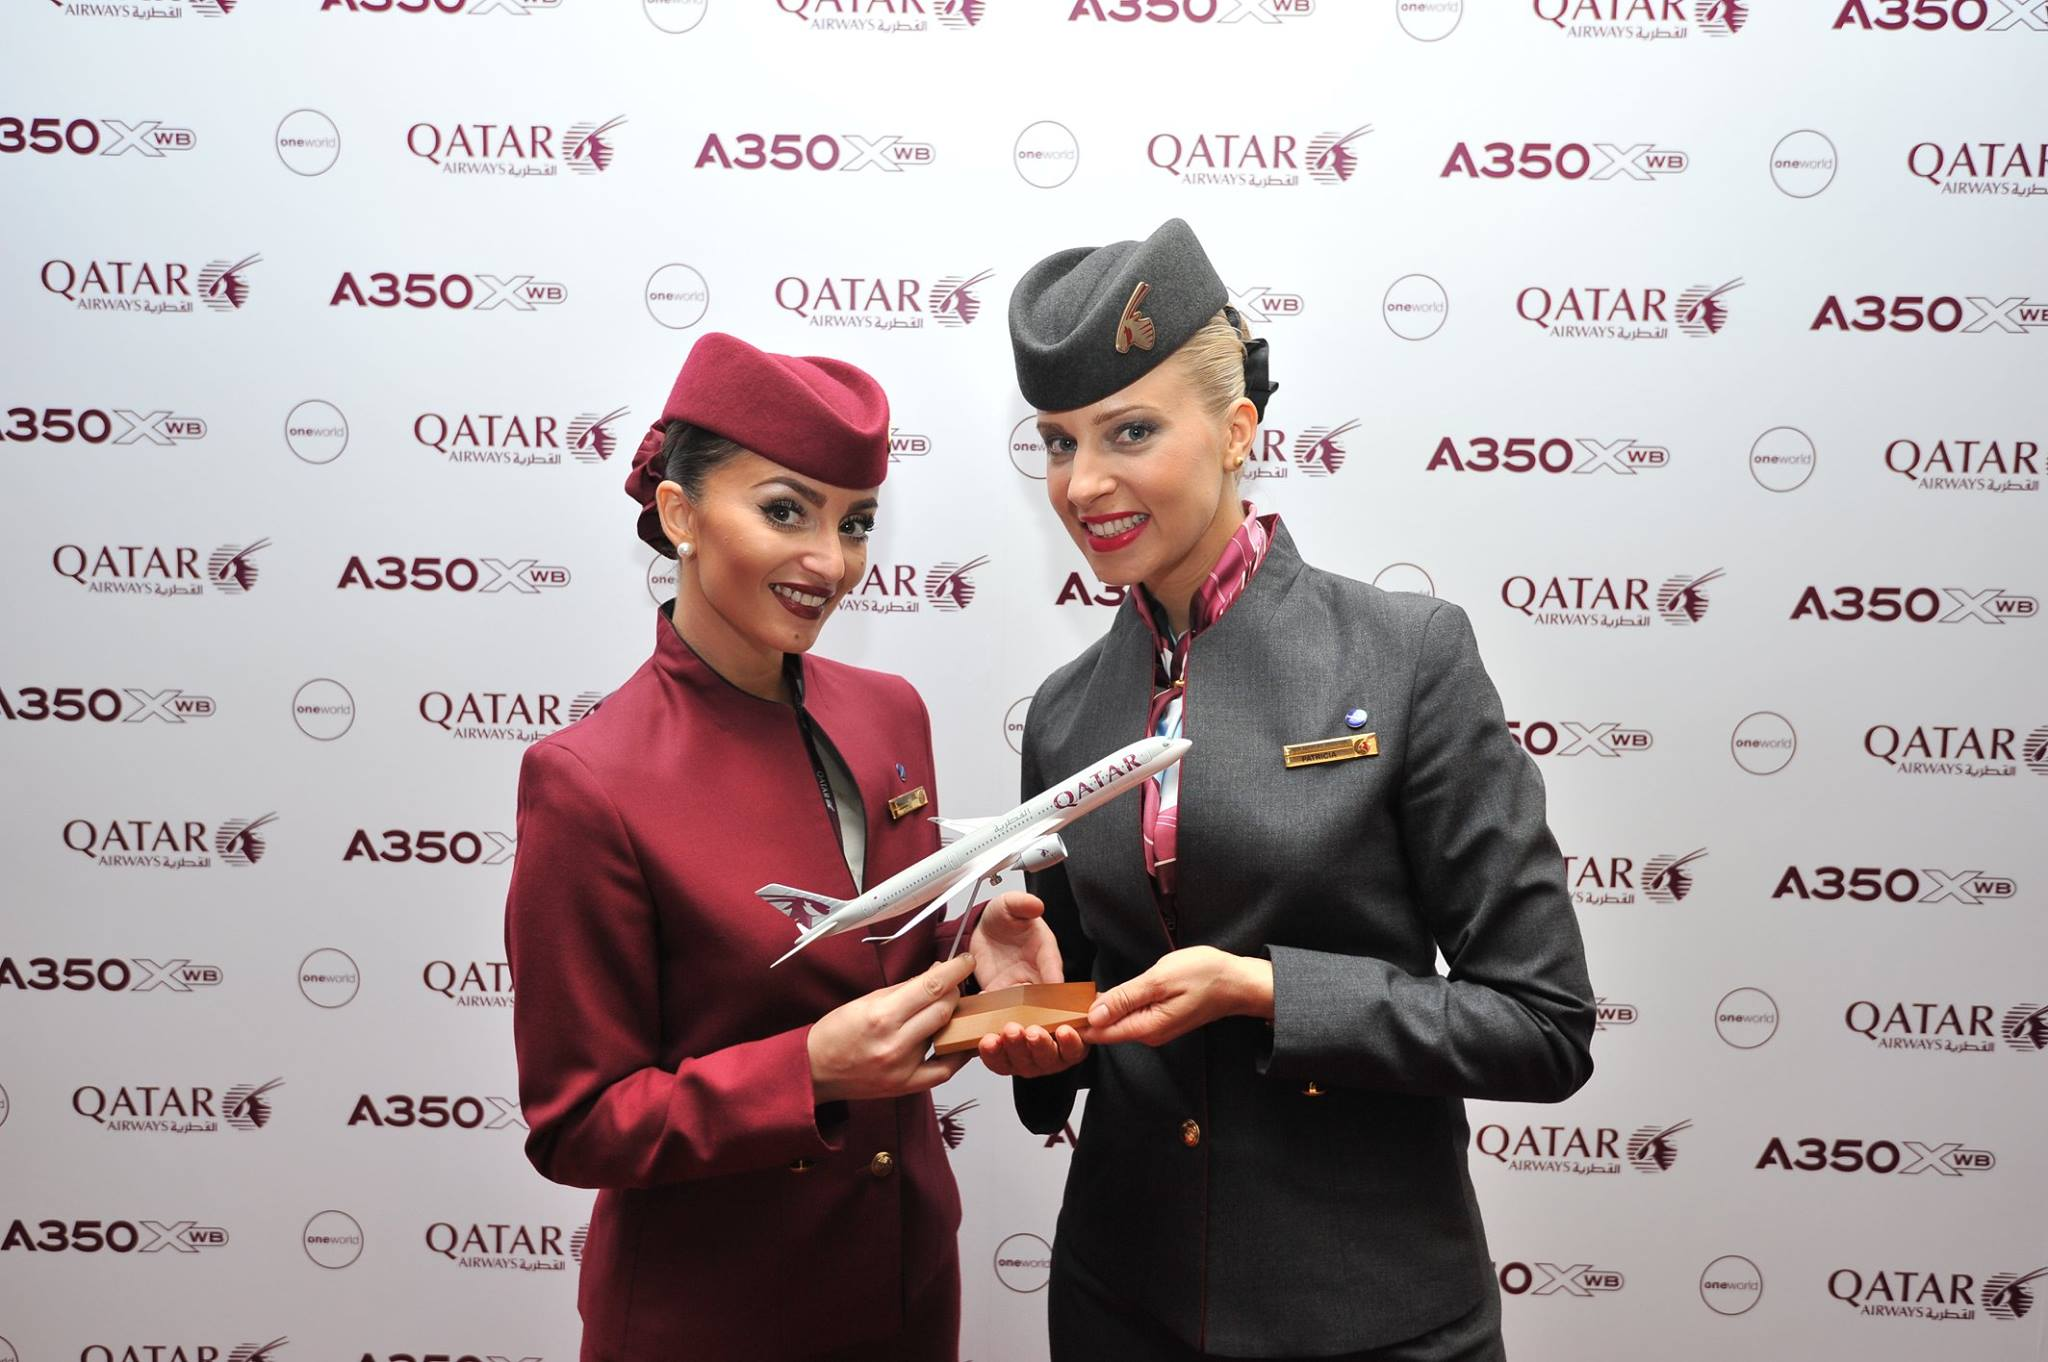 Qatar Airways_First Airbus A350_Doha_hostess